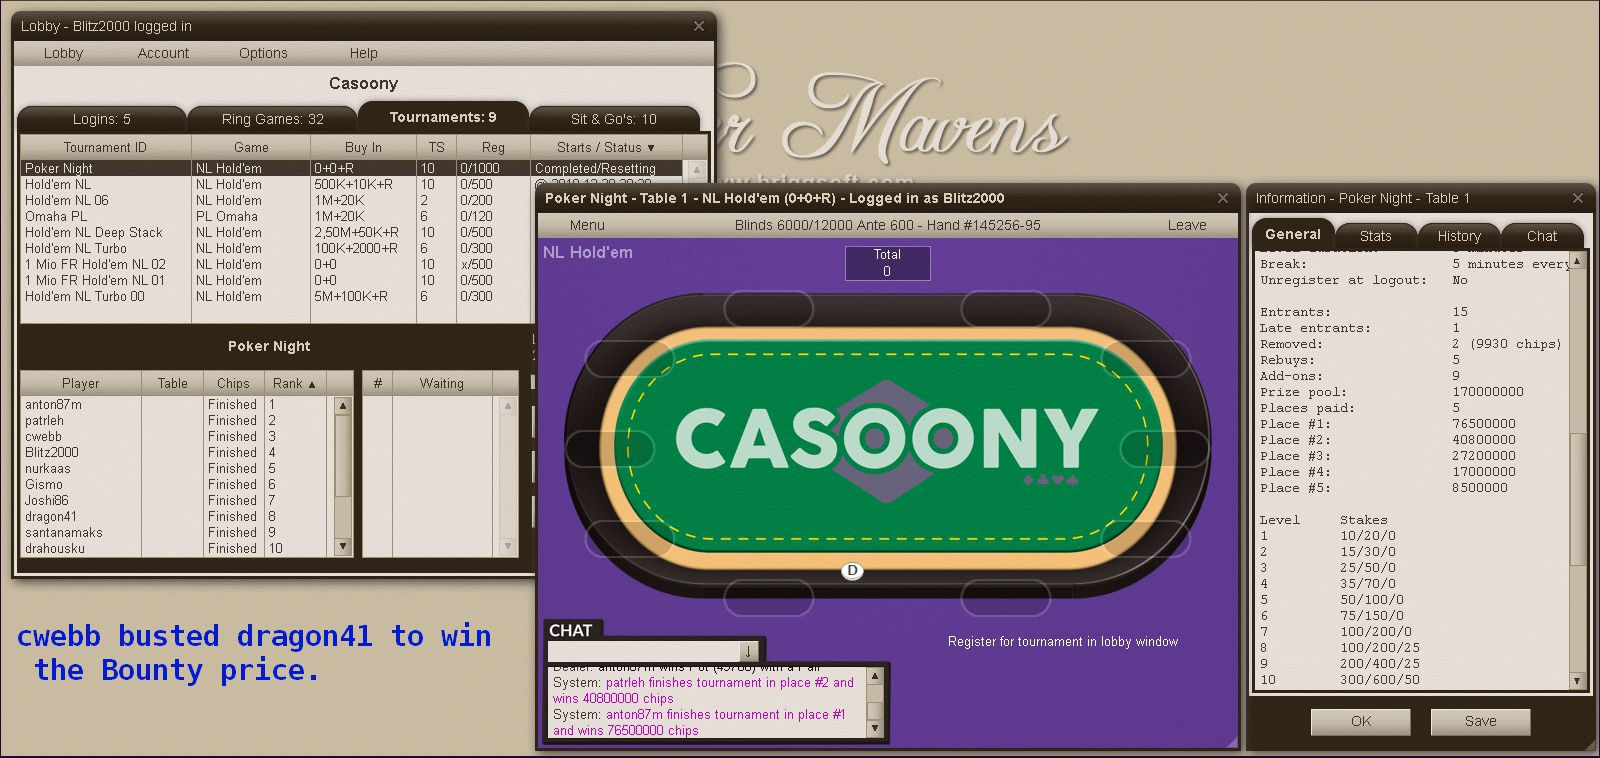 Casoony_Poker_Lobby-PokerNight_20191229_2140_4THPLACE_SHOW.gif